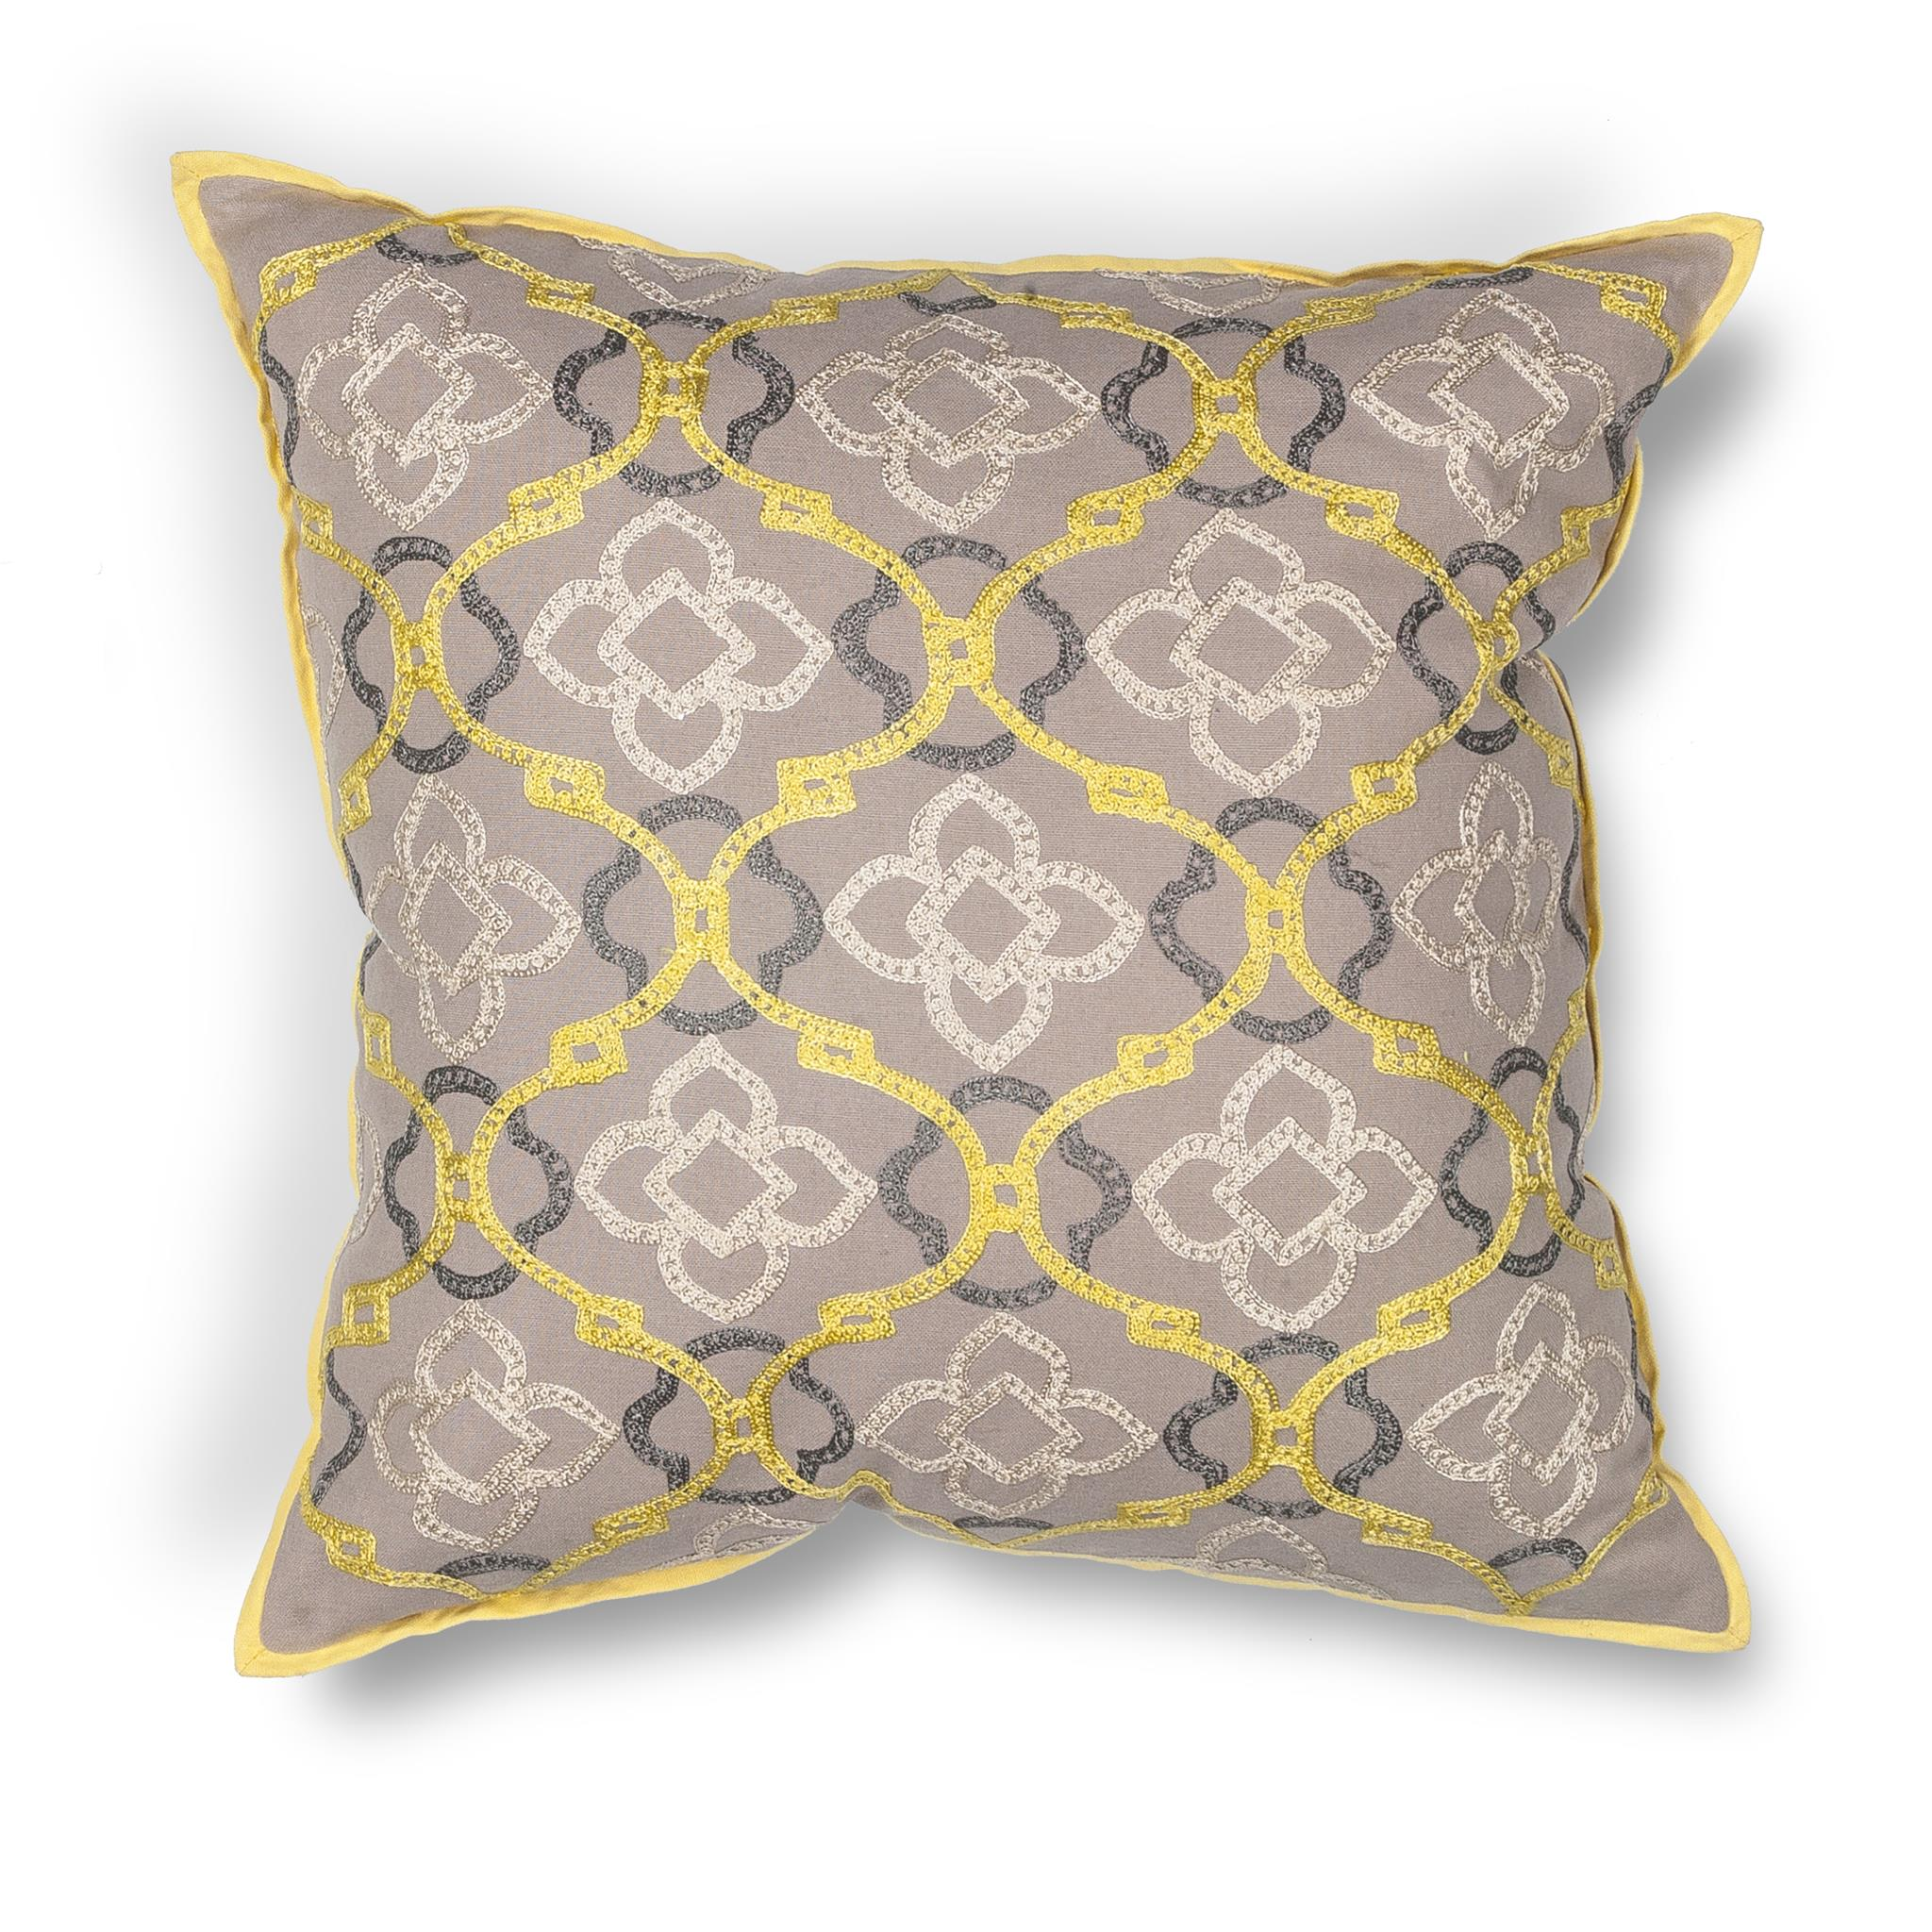 L197 Donny Osmond Home Yellow-Grey Medallions Pillow